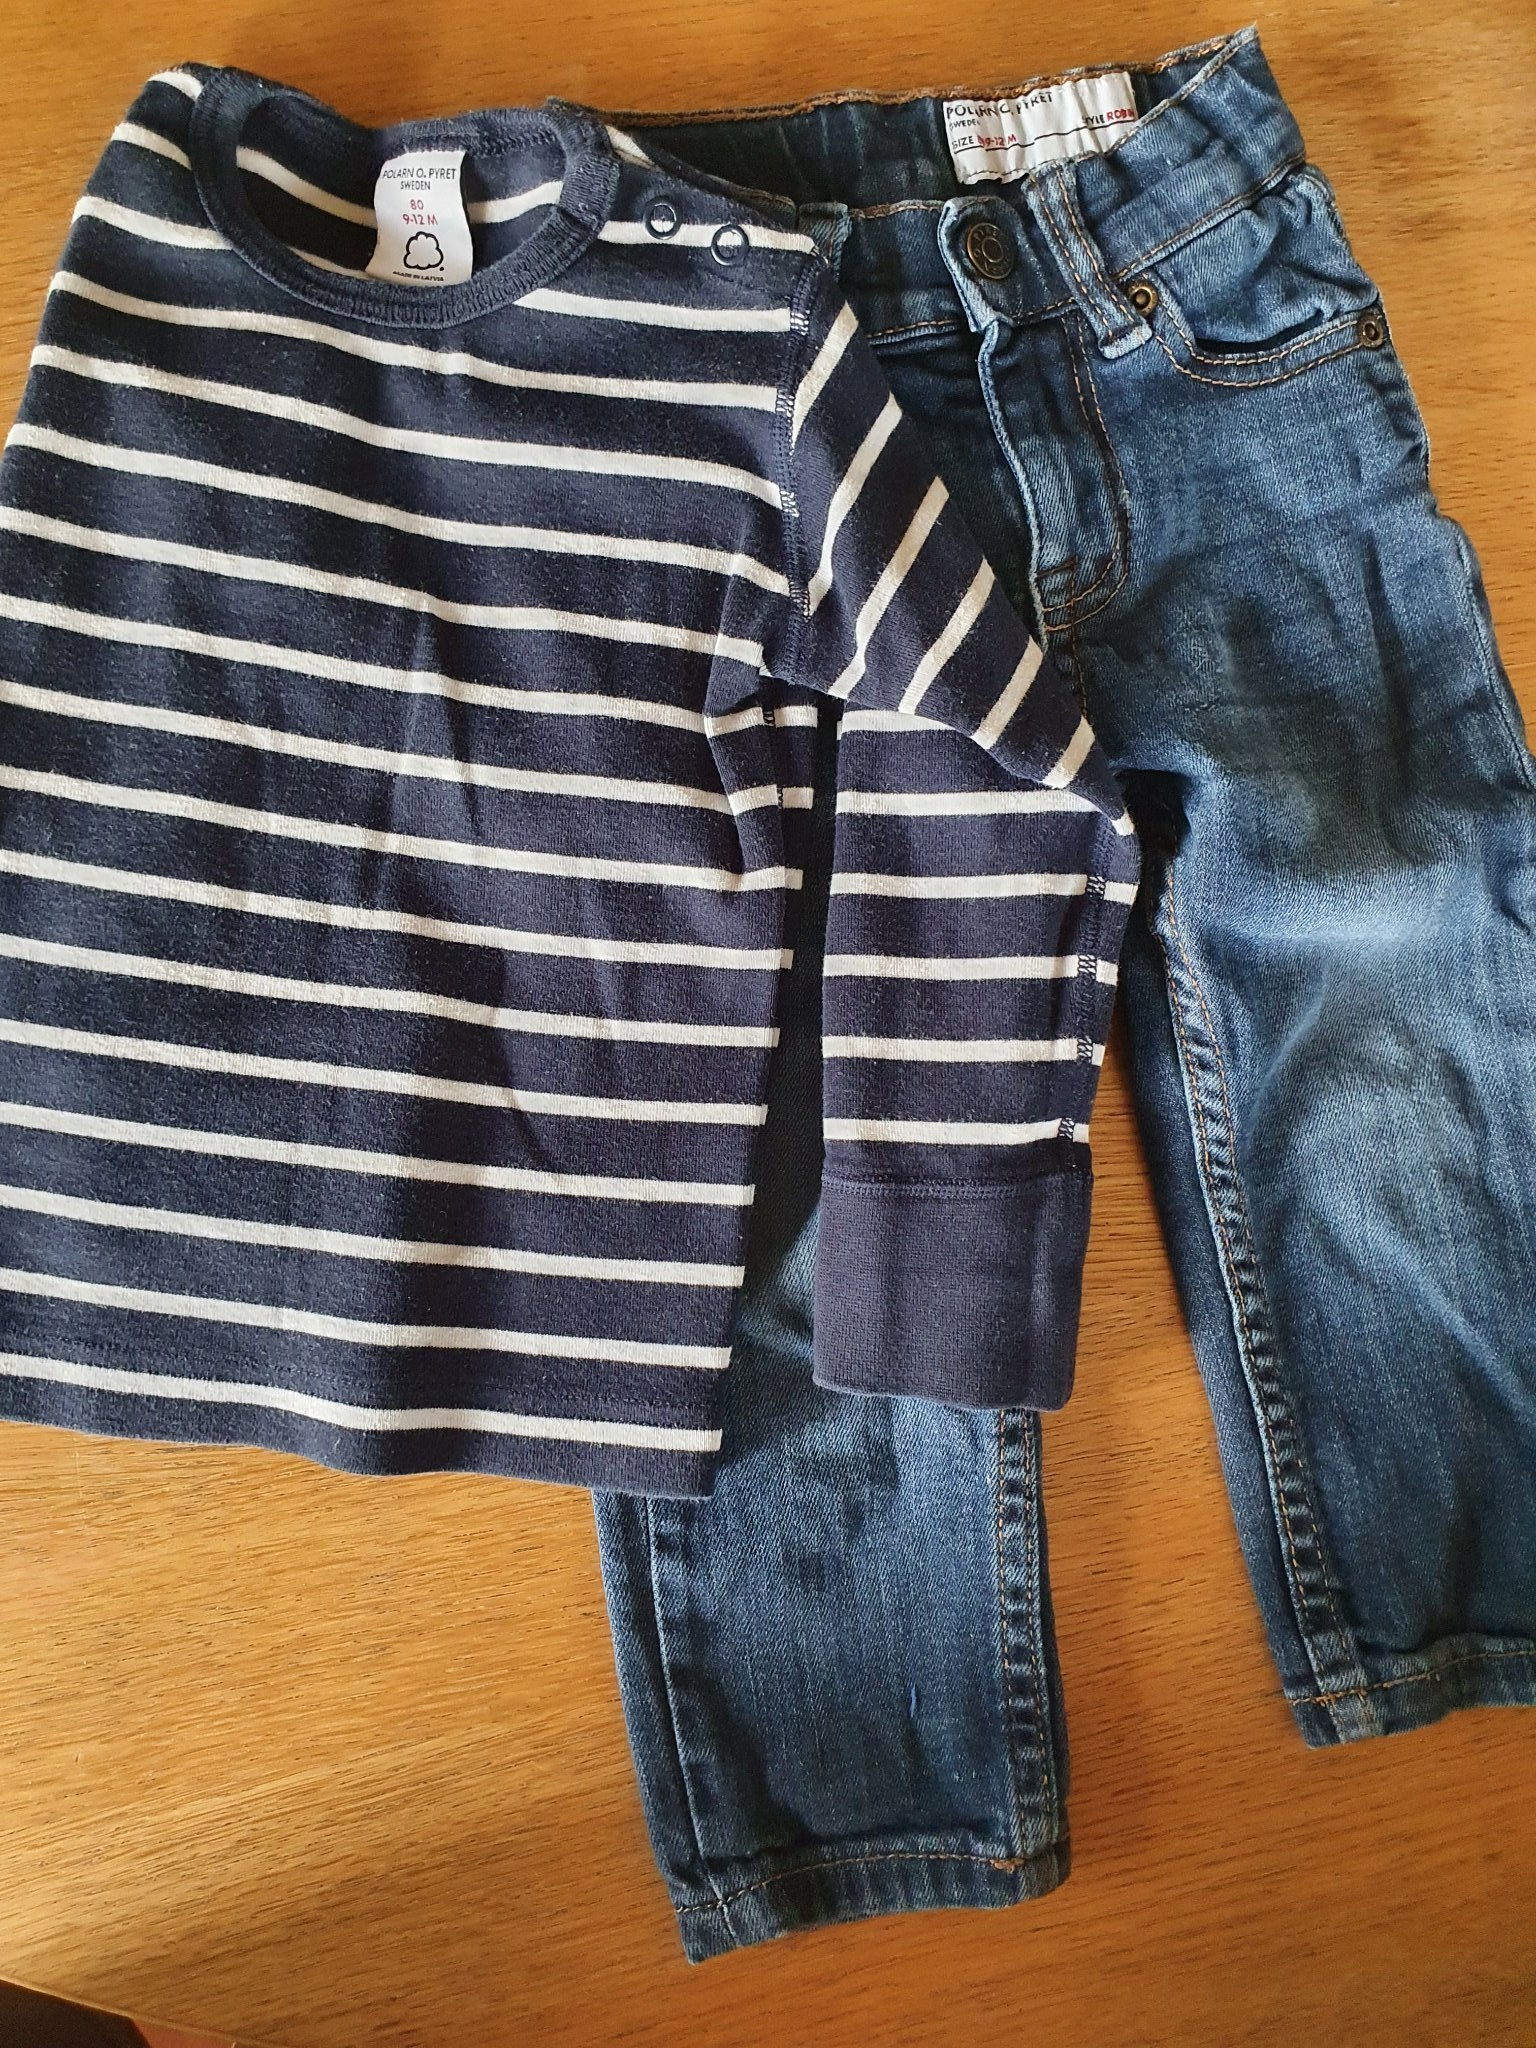 80 polarn o. Pyret pop rand jeans